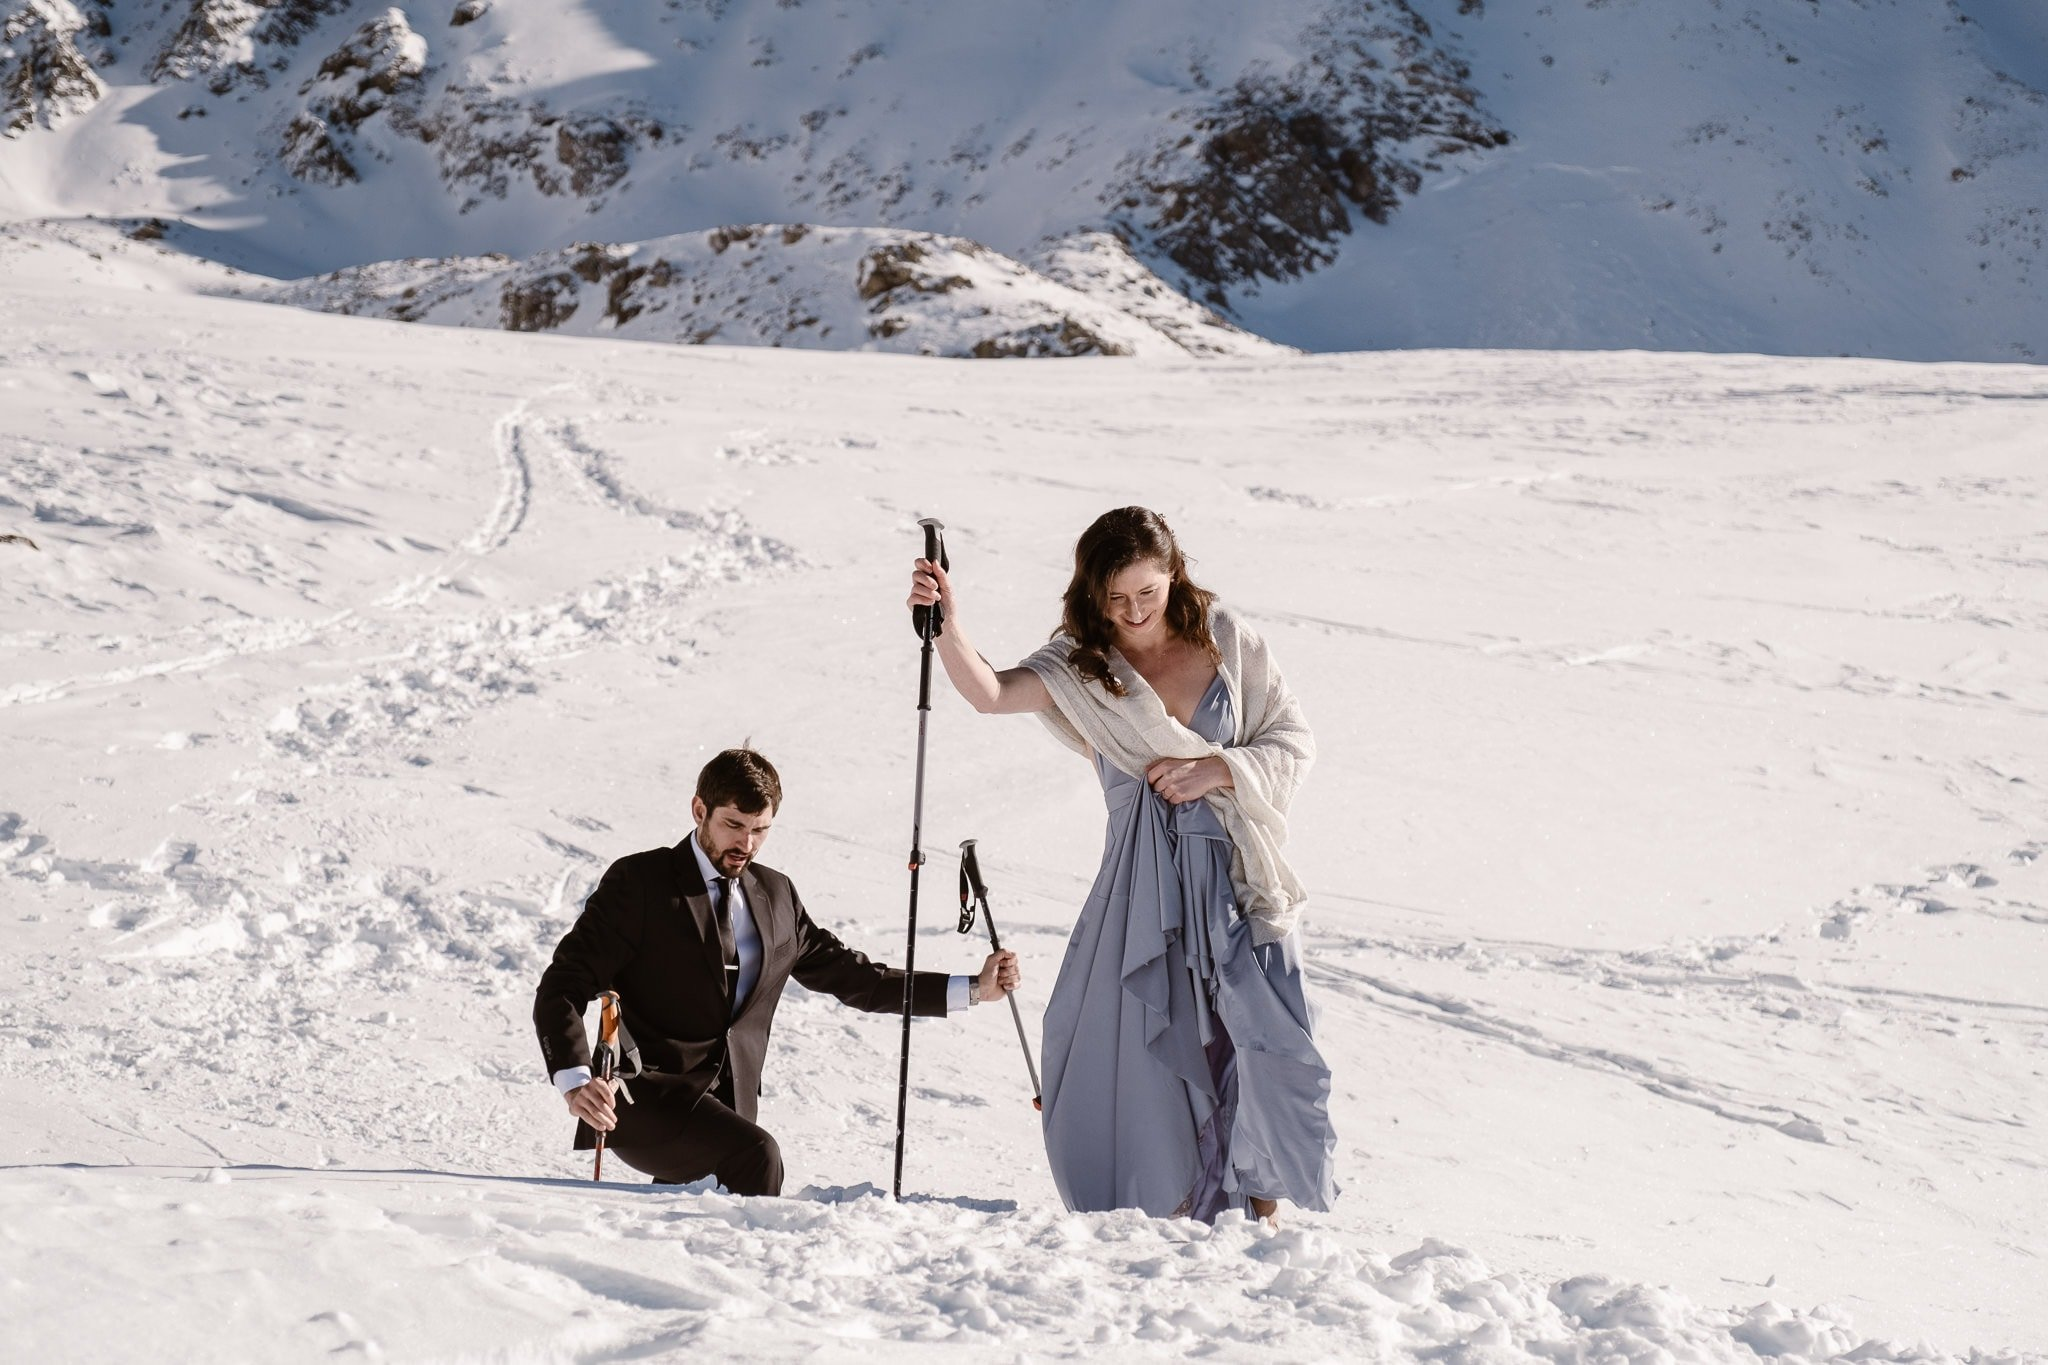 Bride and groom hiking with ski poles in snow, winter backcountry skiing elopement in Colorado mountains, adventure elopement photography